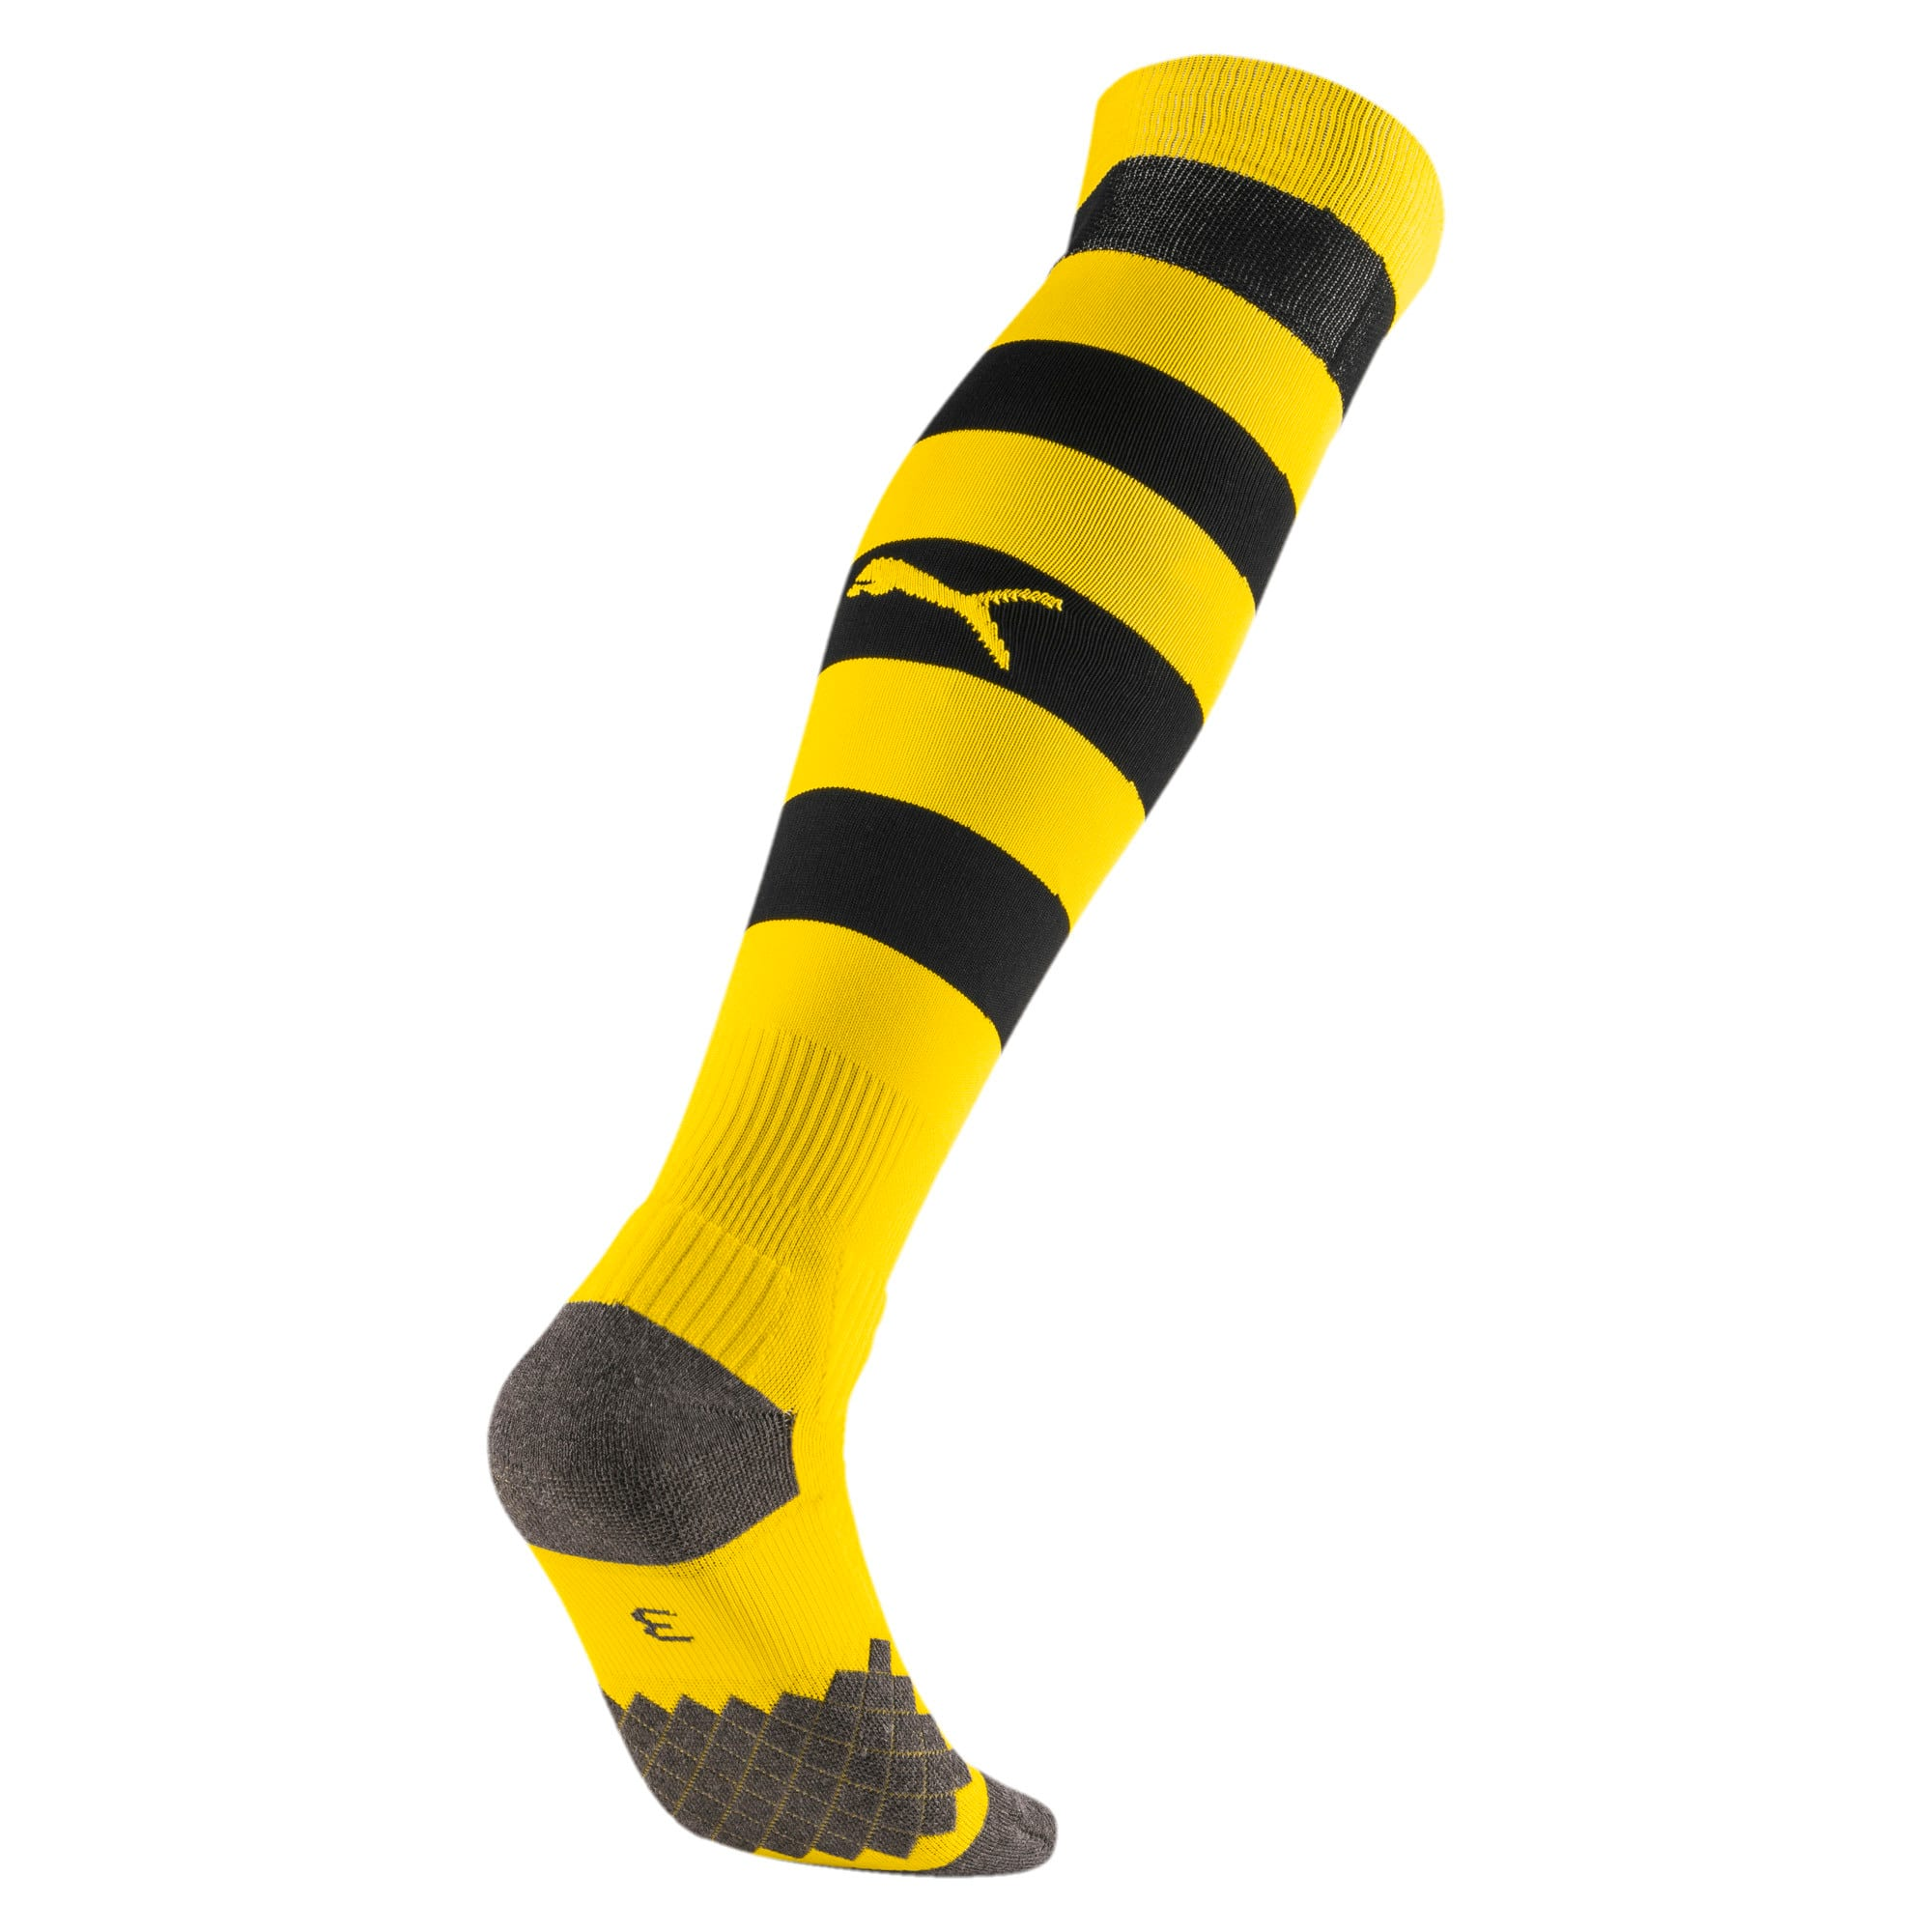 Thumbnail 2 of BVB Men's Hooped Socks, Cyber Yellow-Puma Black, medium